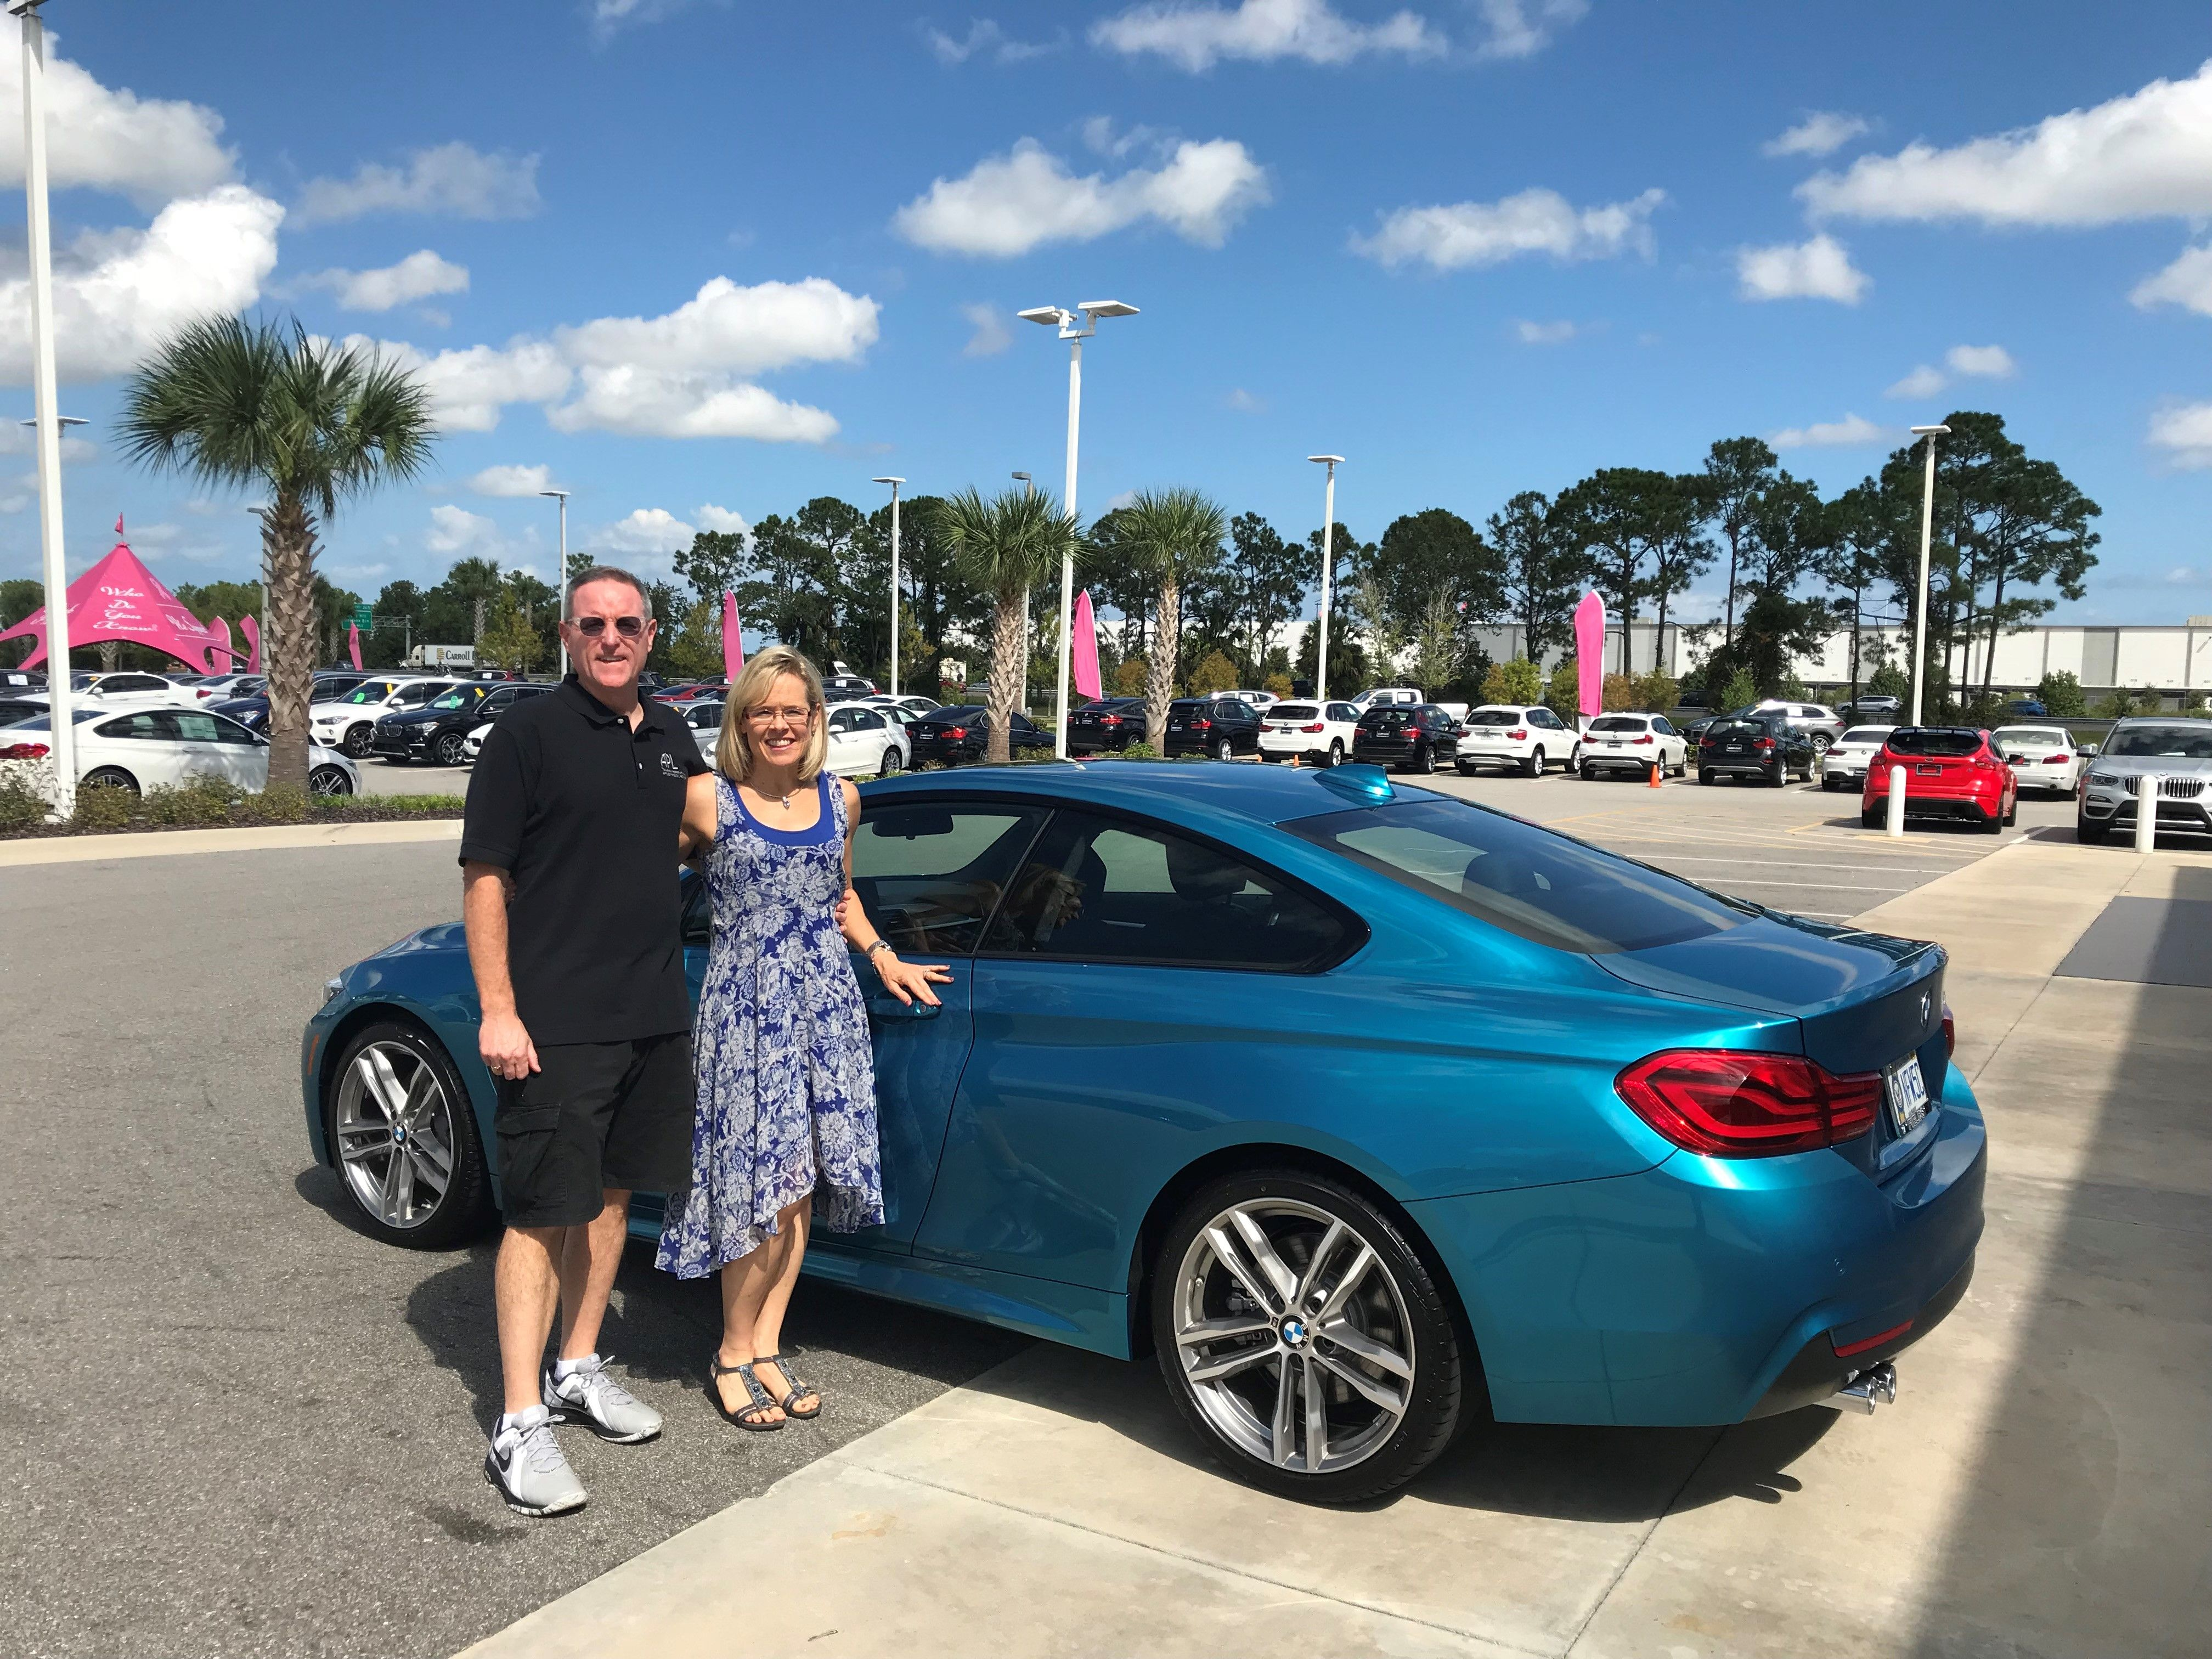 Randy Terri And Their 2019 Snapper Rocks Blue Bmw 430i Coupe We Welcome Your Family To Ours Fields Bmw Congratulates Th Bmw Affordable Luxury Coupe